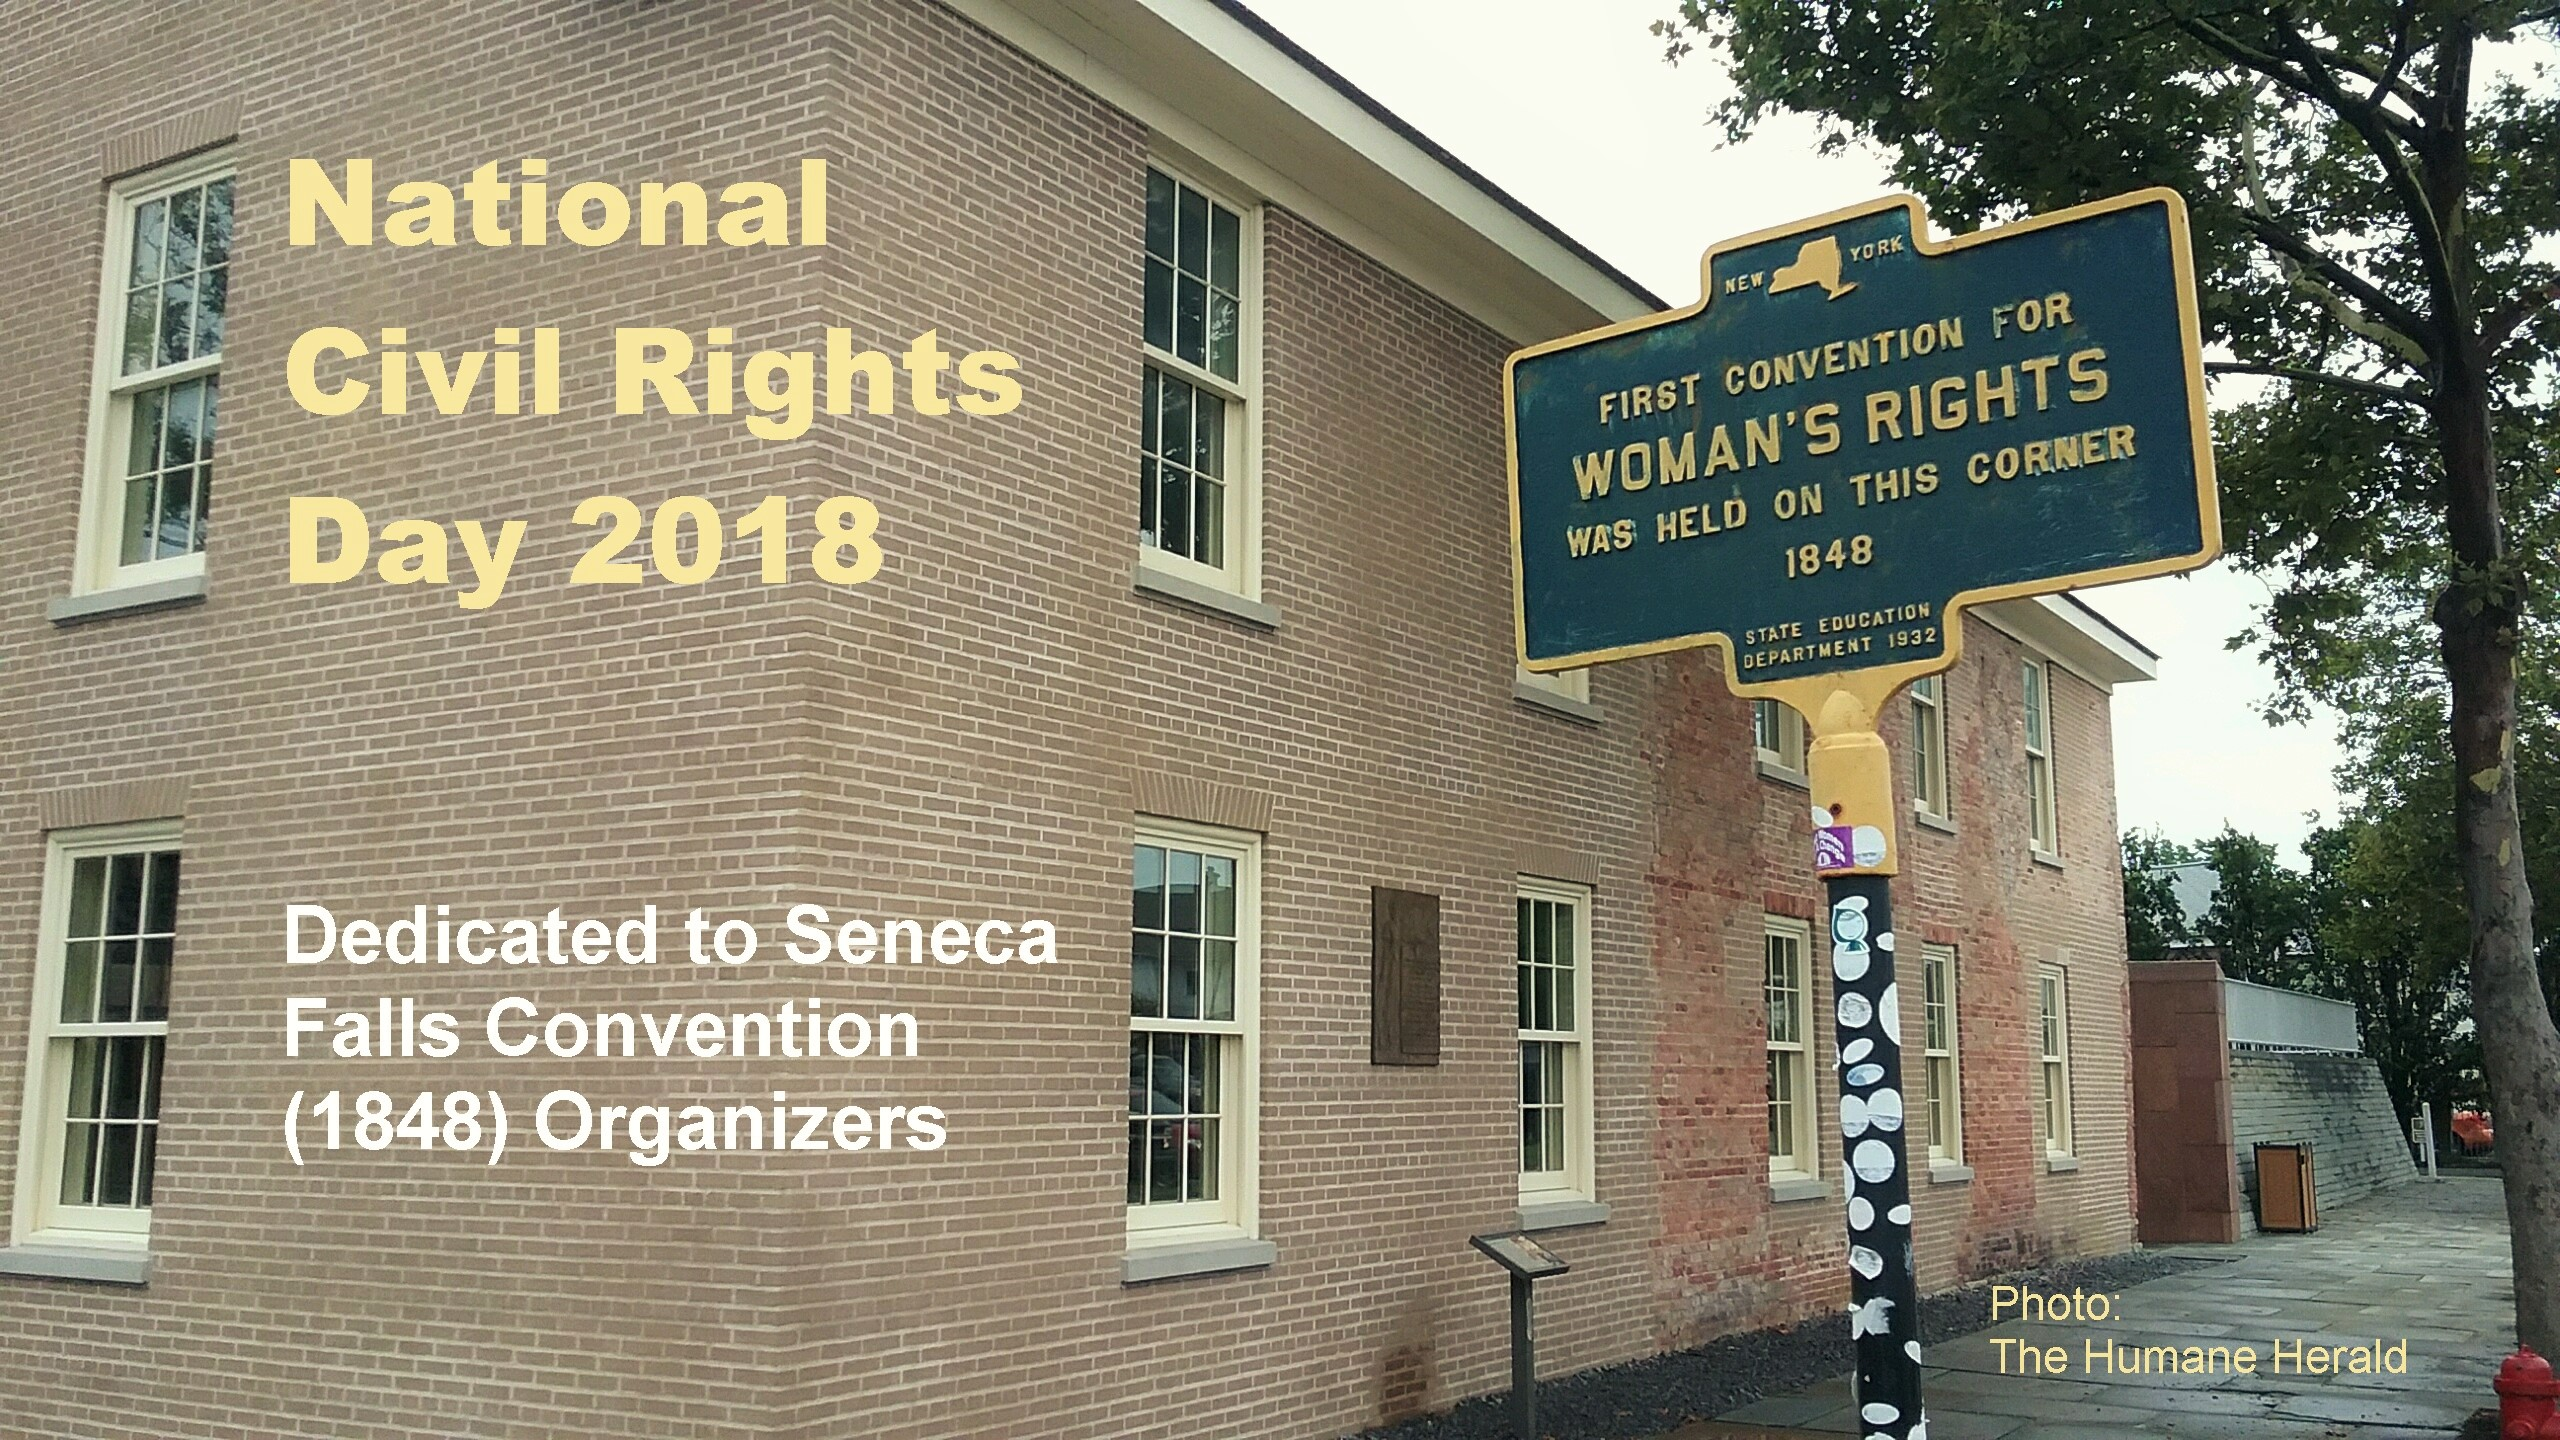 National Civil Rights Day Dedicated to Seneca Falls Convention Organizers